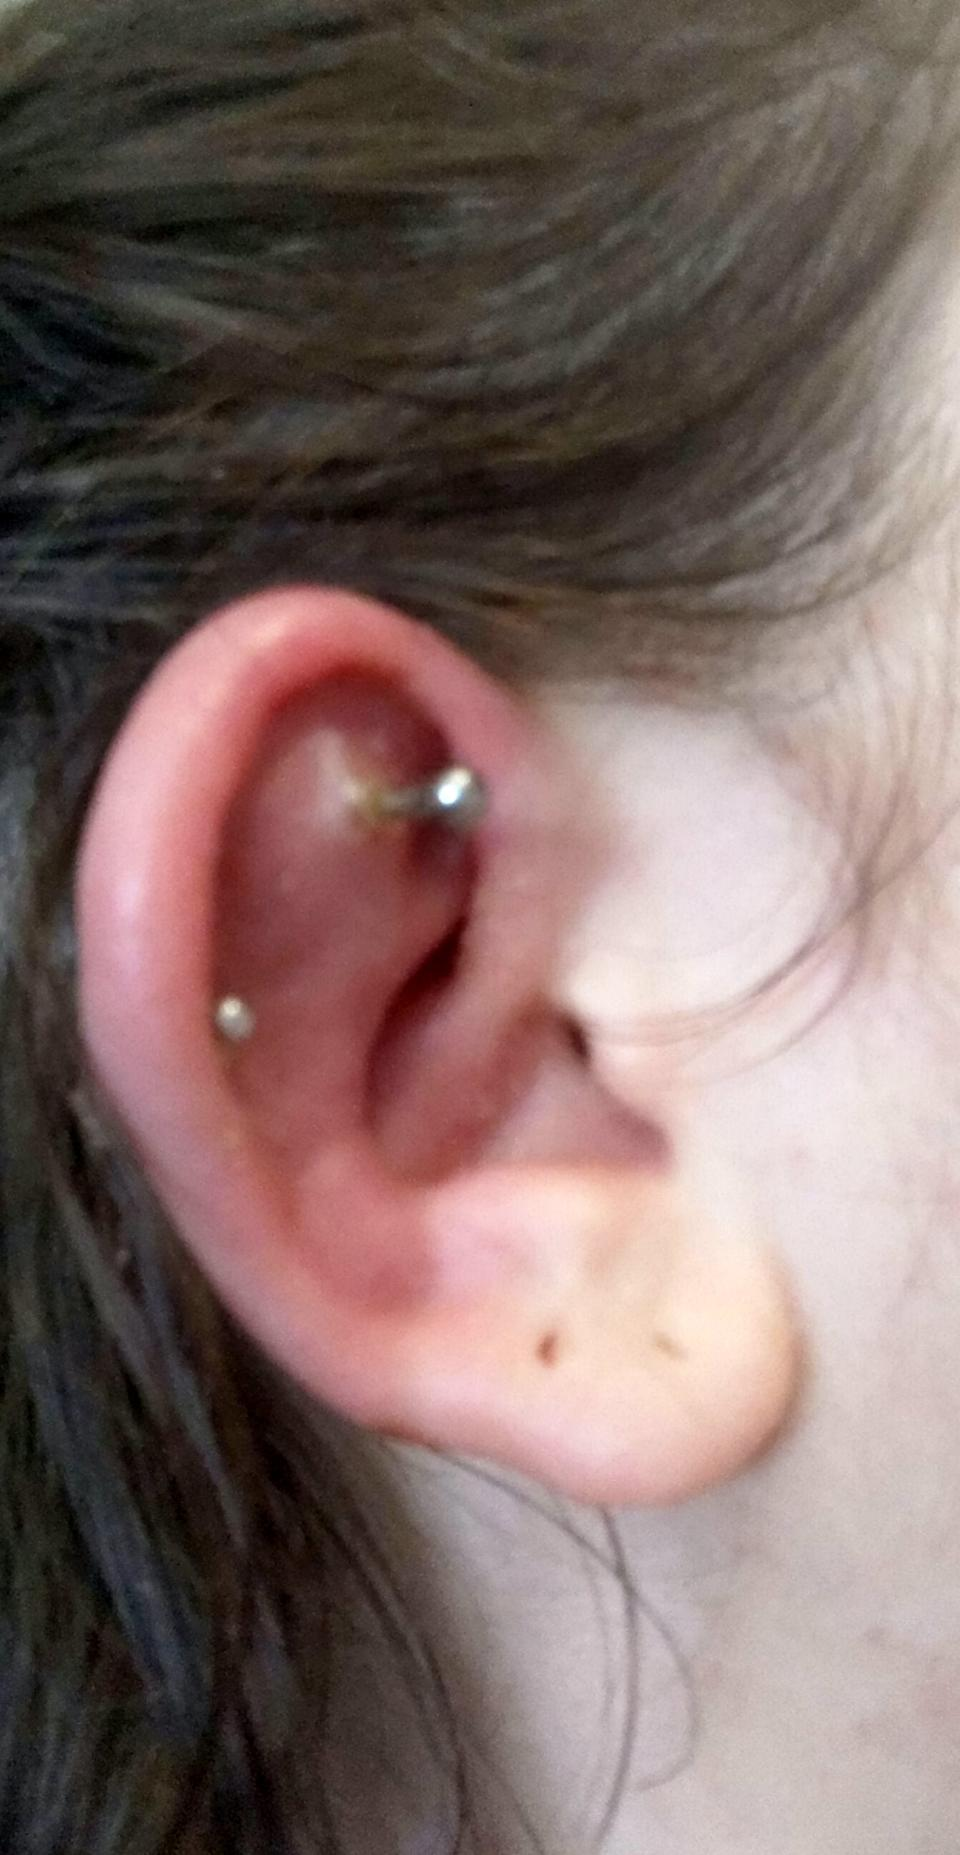 Stella Blezard's ear a few days after the piercing. (SWNS)